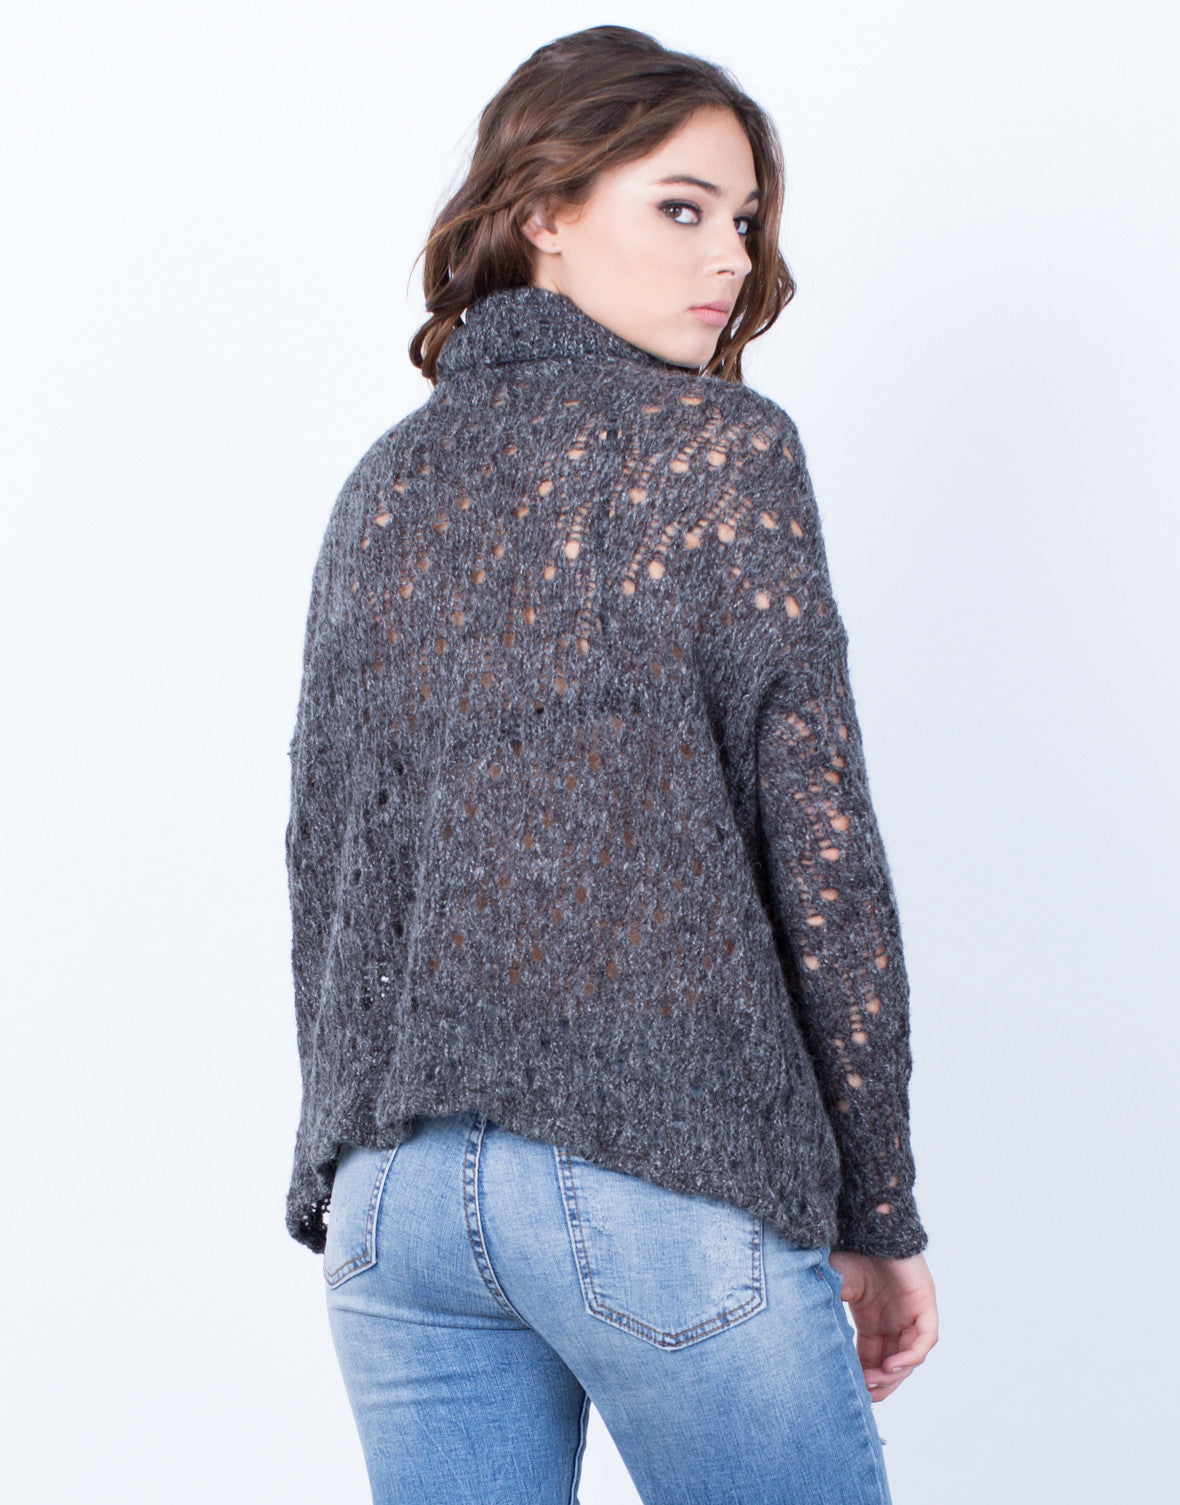 Back View of Holey Wool Sweater